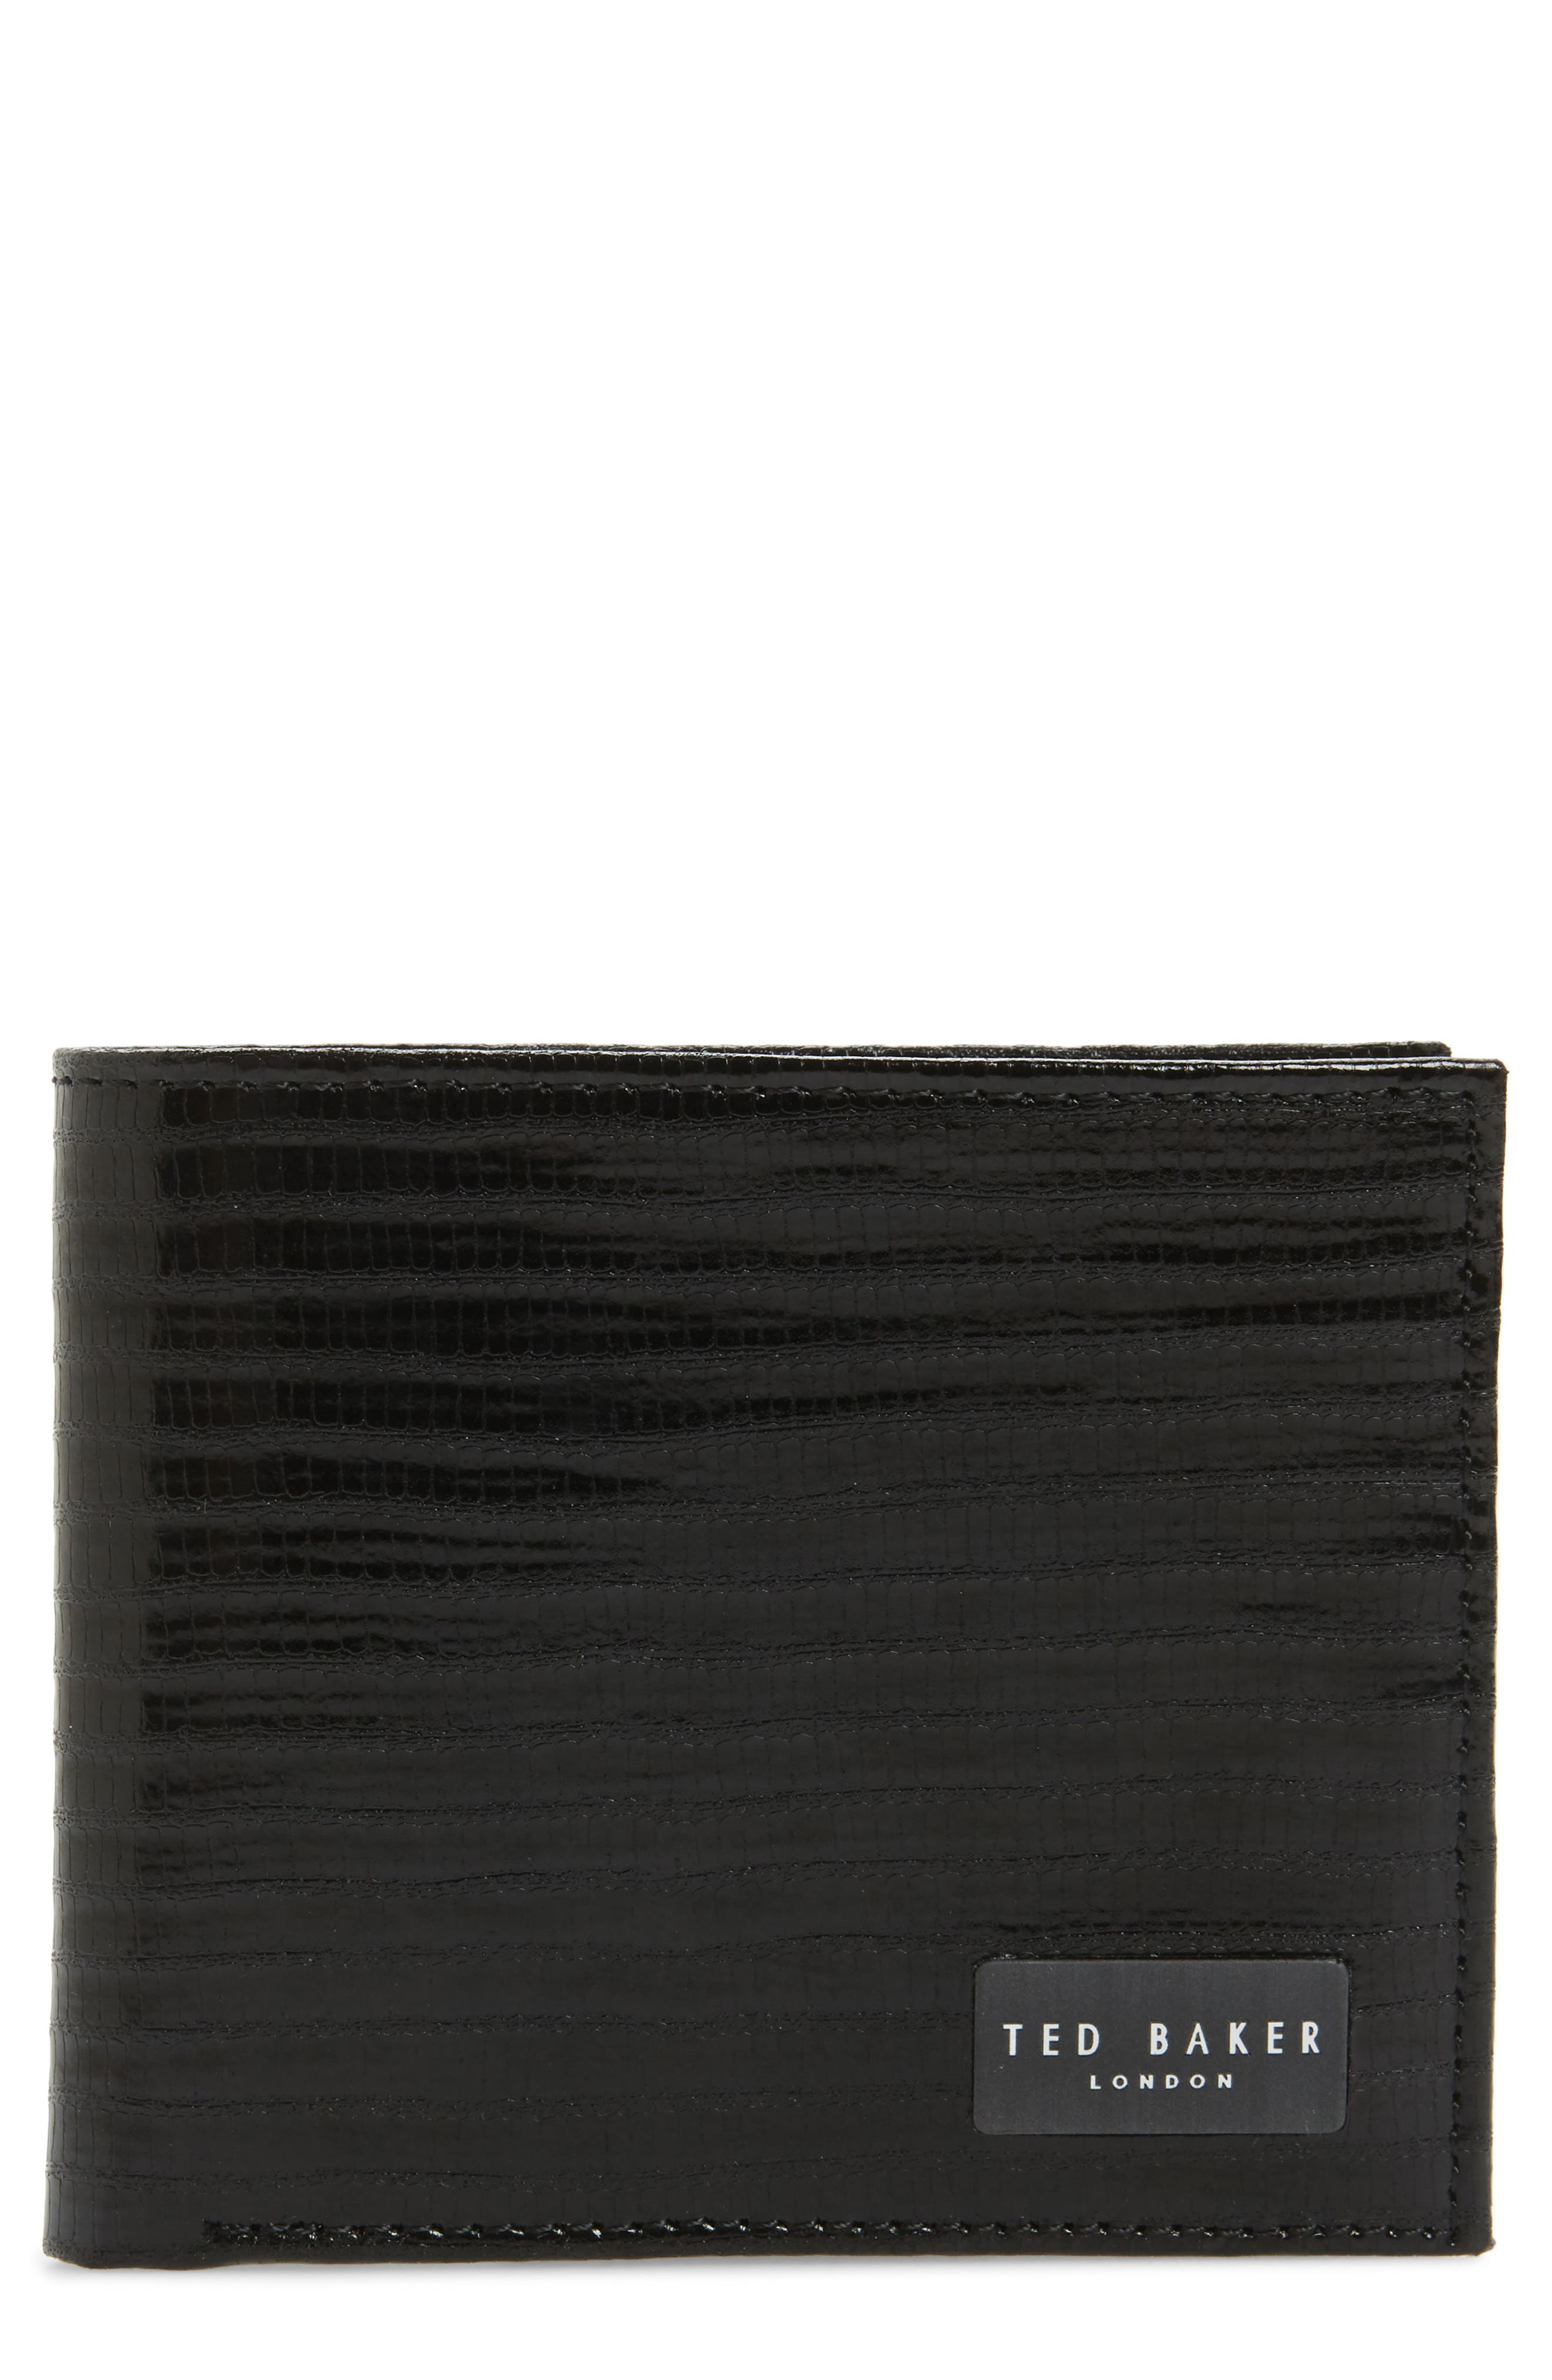 Slayts Leather Wallet,                             Main thumbnail 1, color,                             Black